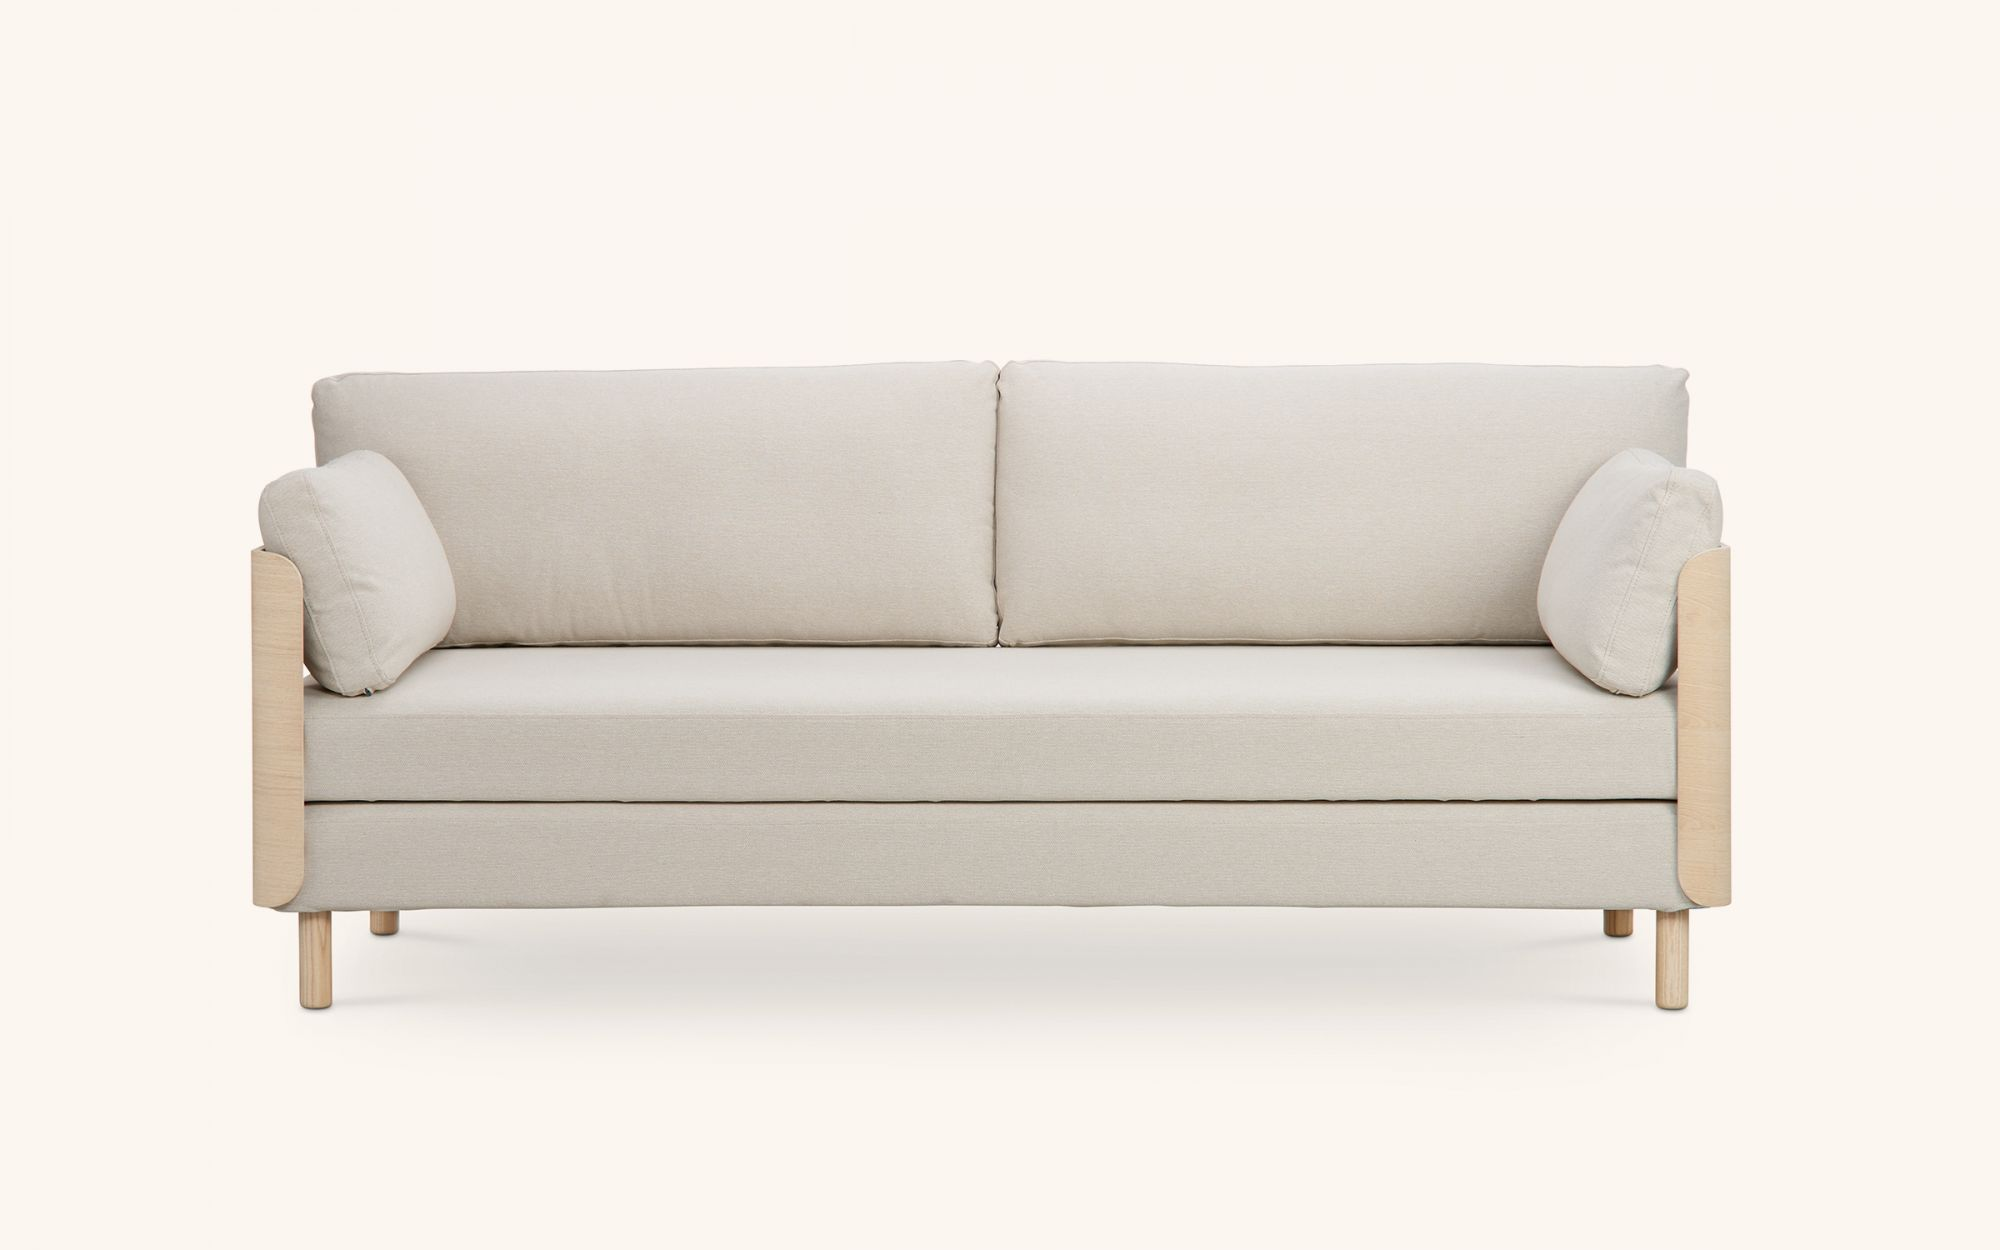 ON Wood Sofabed - oak beige front view